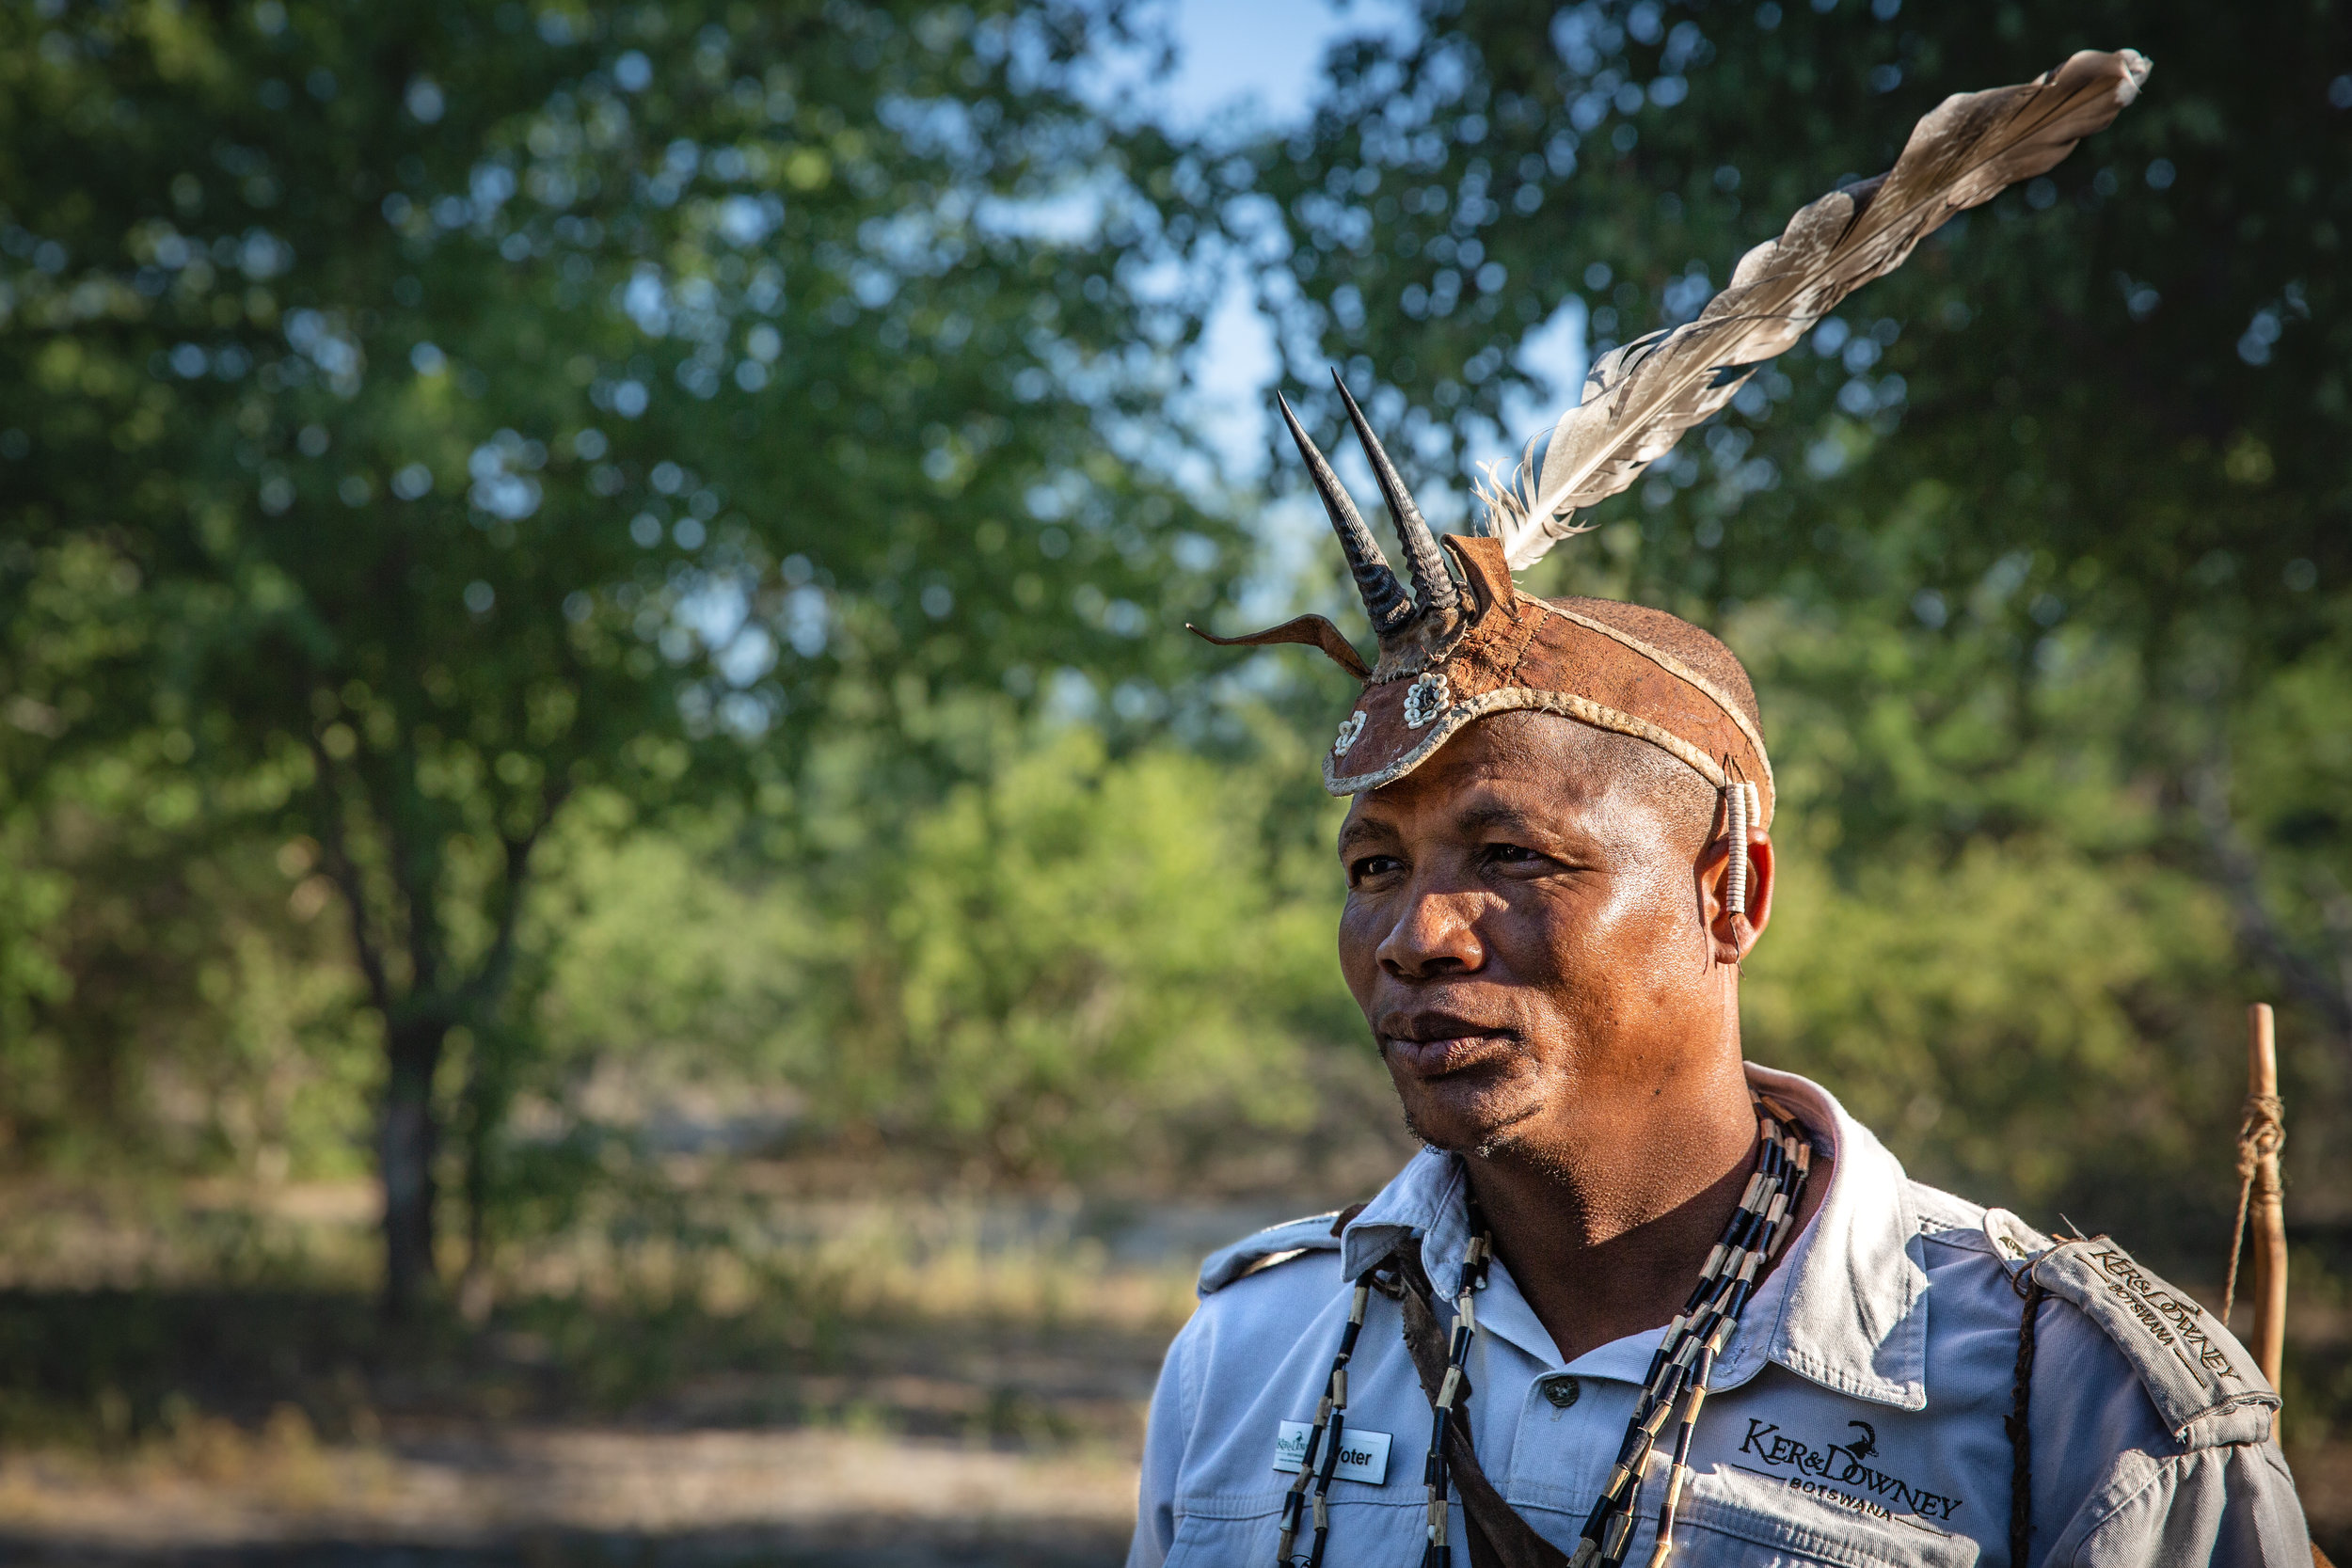 Voter, a Bush Guide in Botswana. In partnership with  Ker & Downey, Botswana